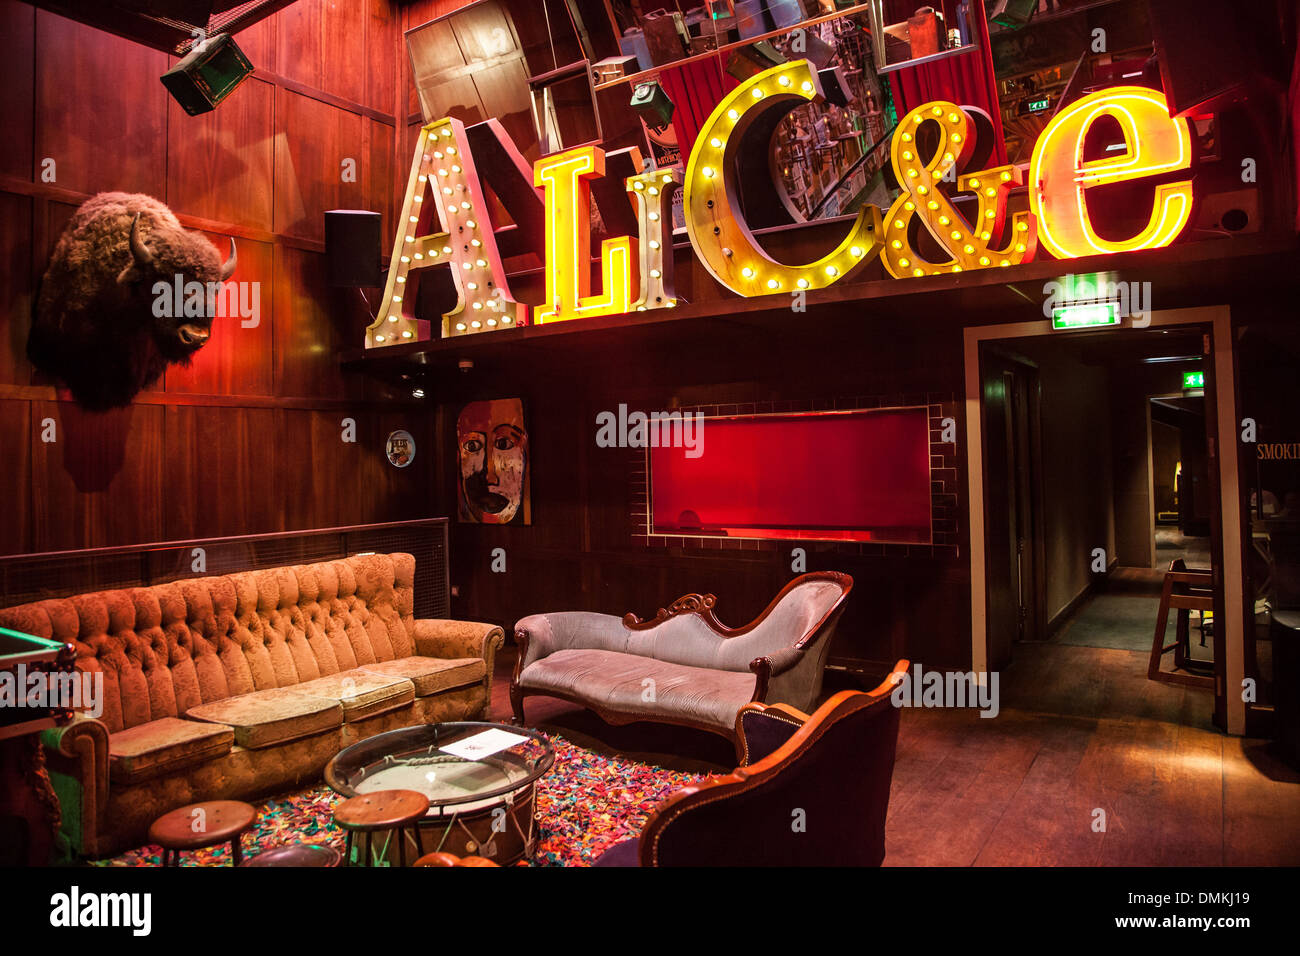 INTERIOR OF THE RESTAURANT THE 37 DAWSON STREET BY THE LOUNGE AREA, DUBLIN, IRELAND - Stock Image